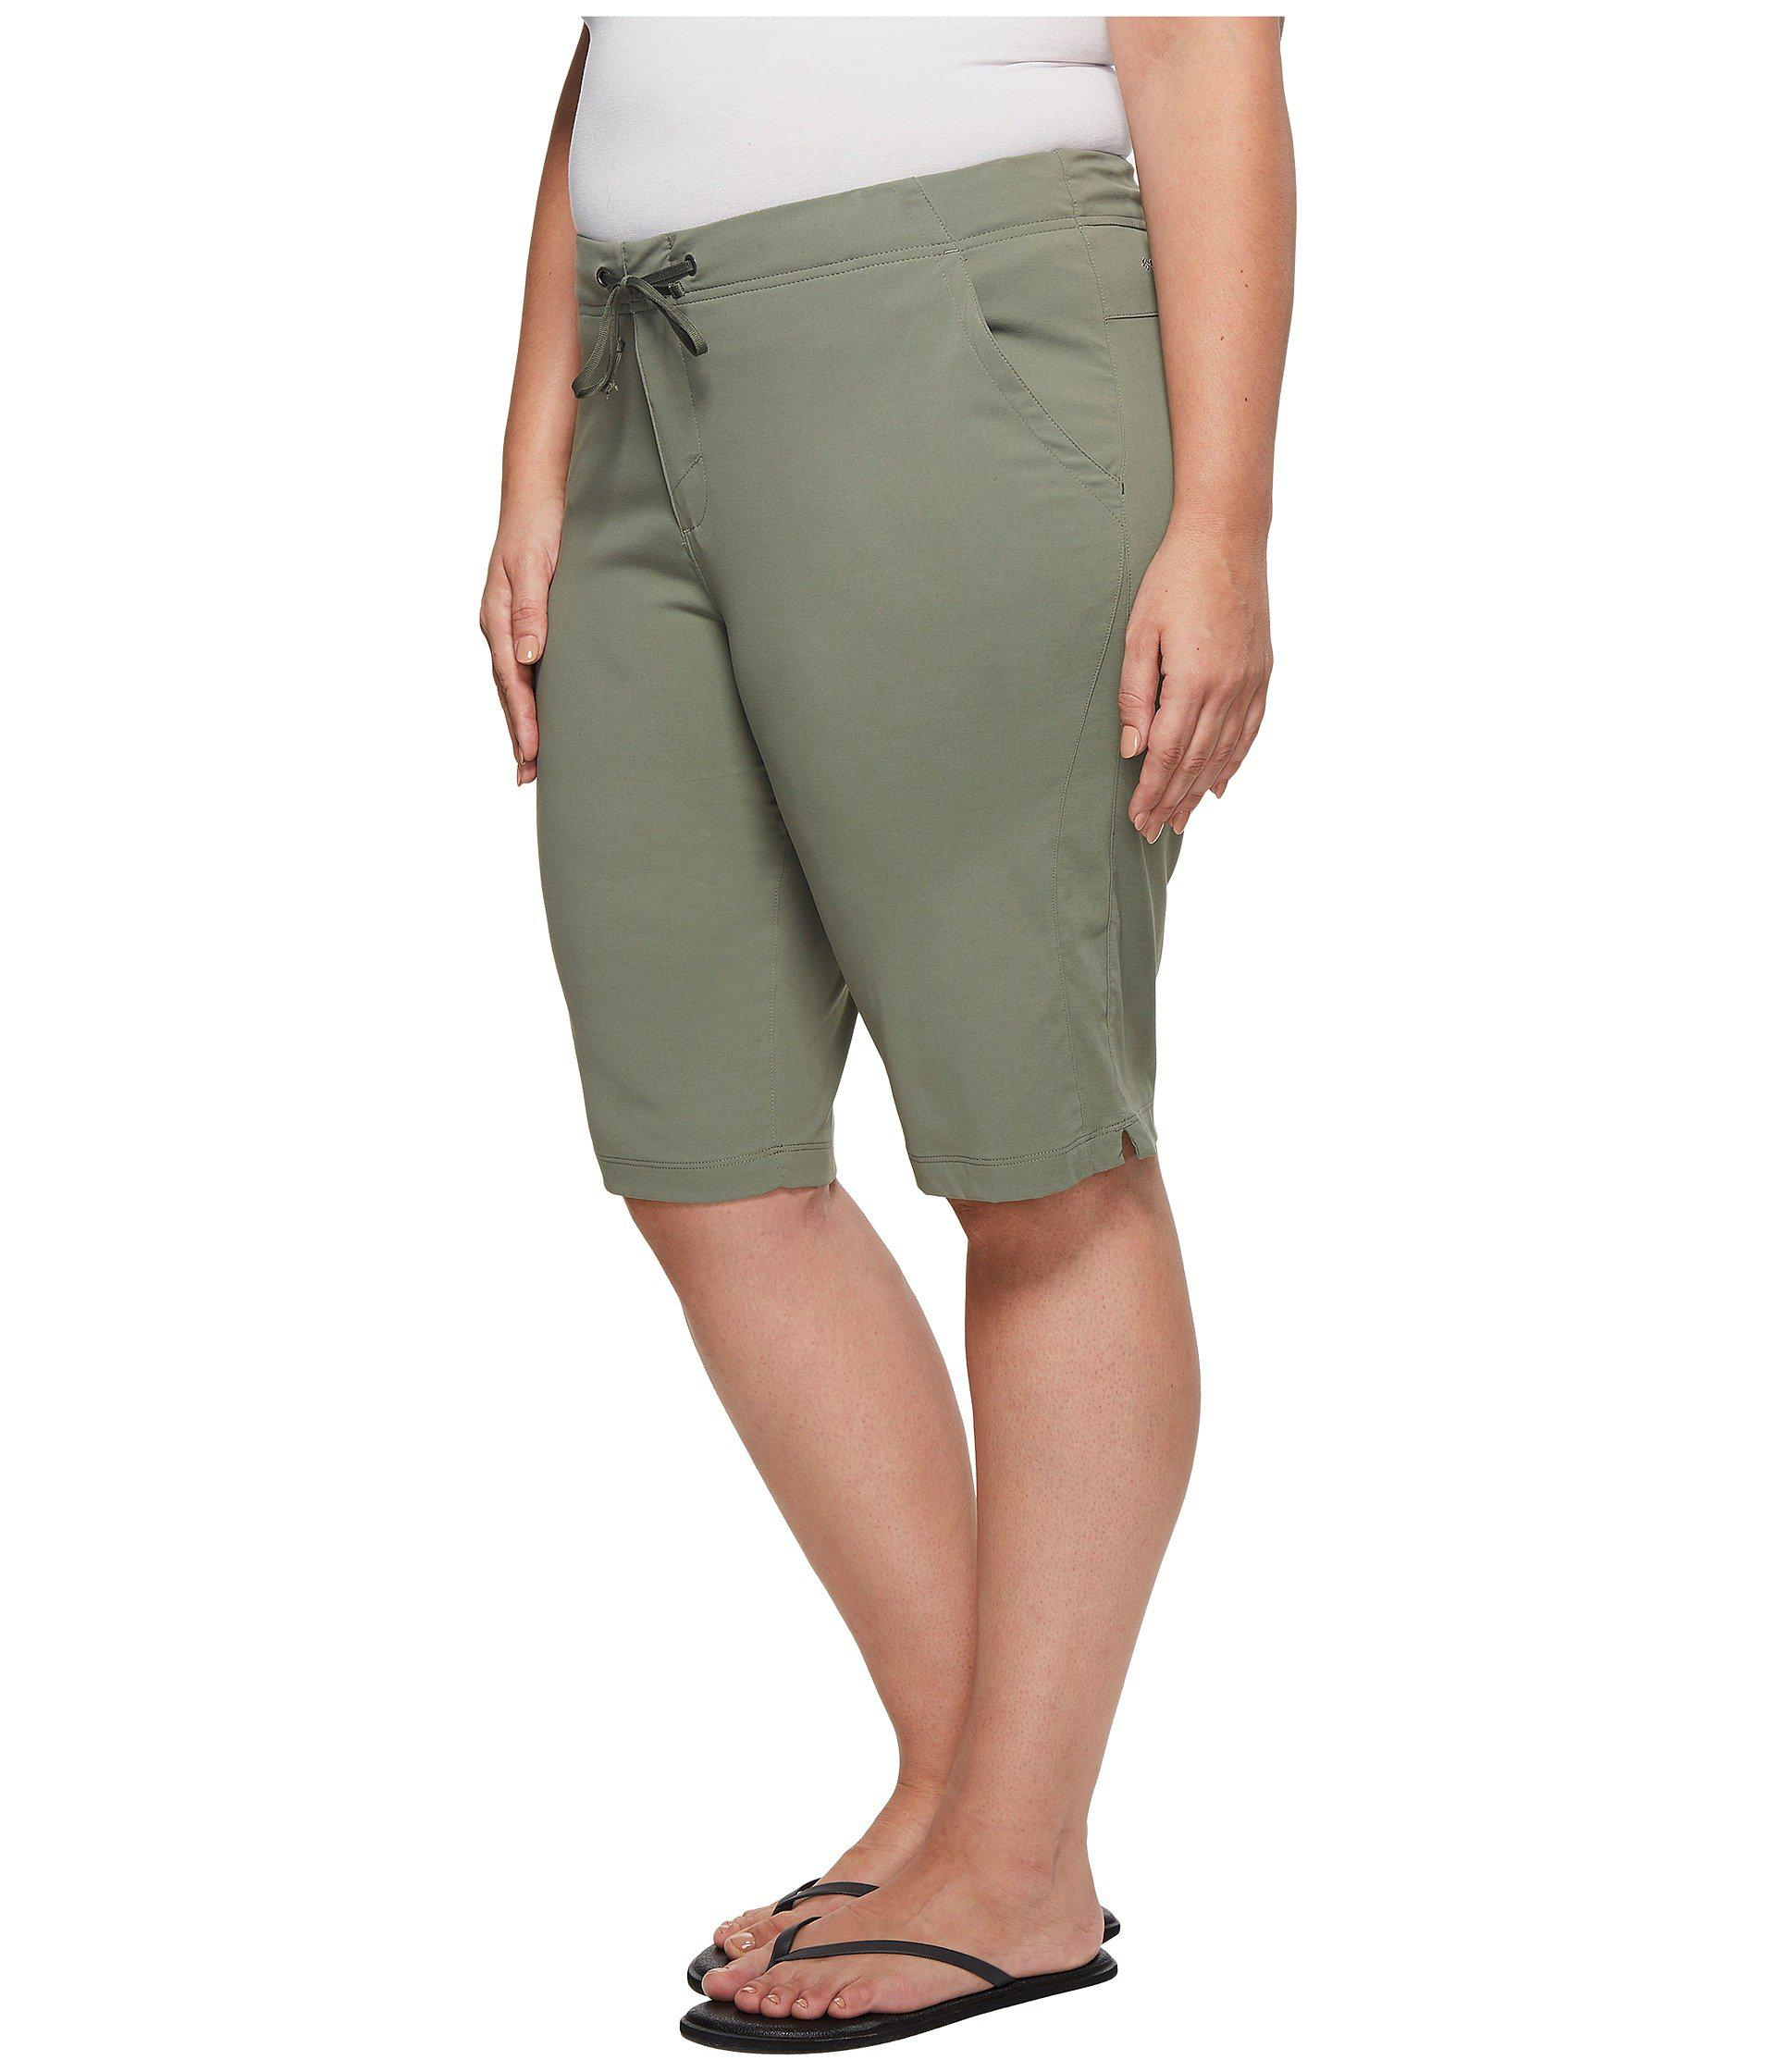 6ddd2421e67 Lyst - Columbia Plus Size Anytime Outdoortm Long Short in Green